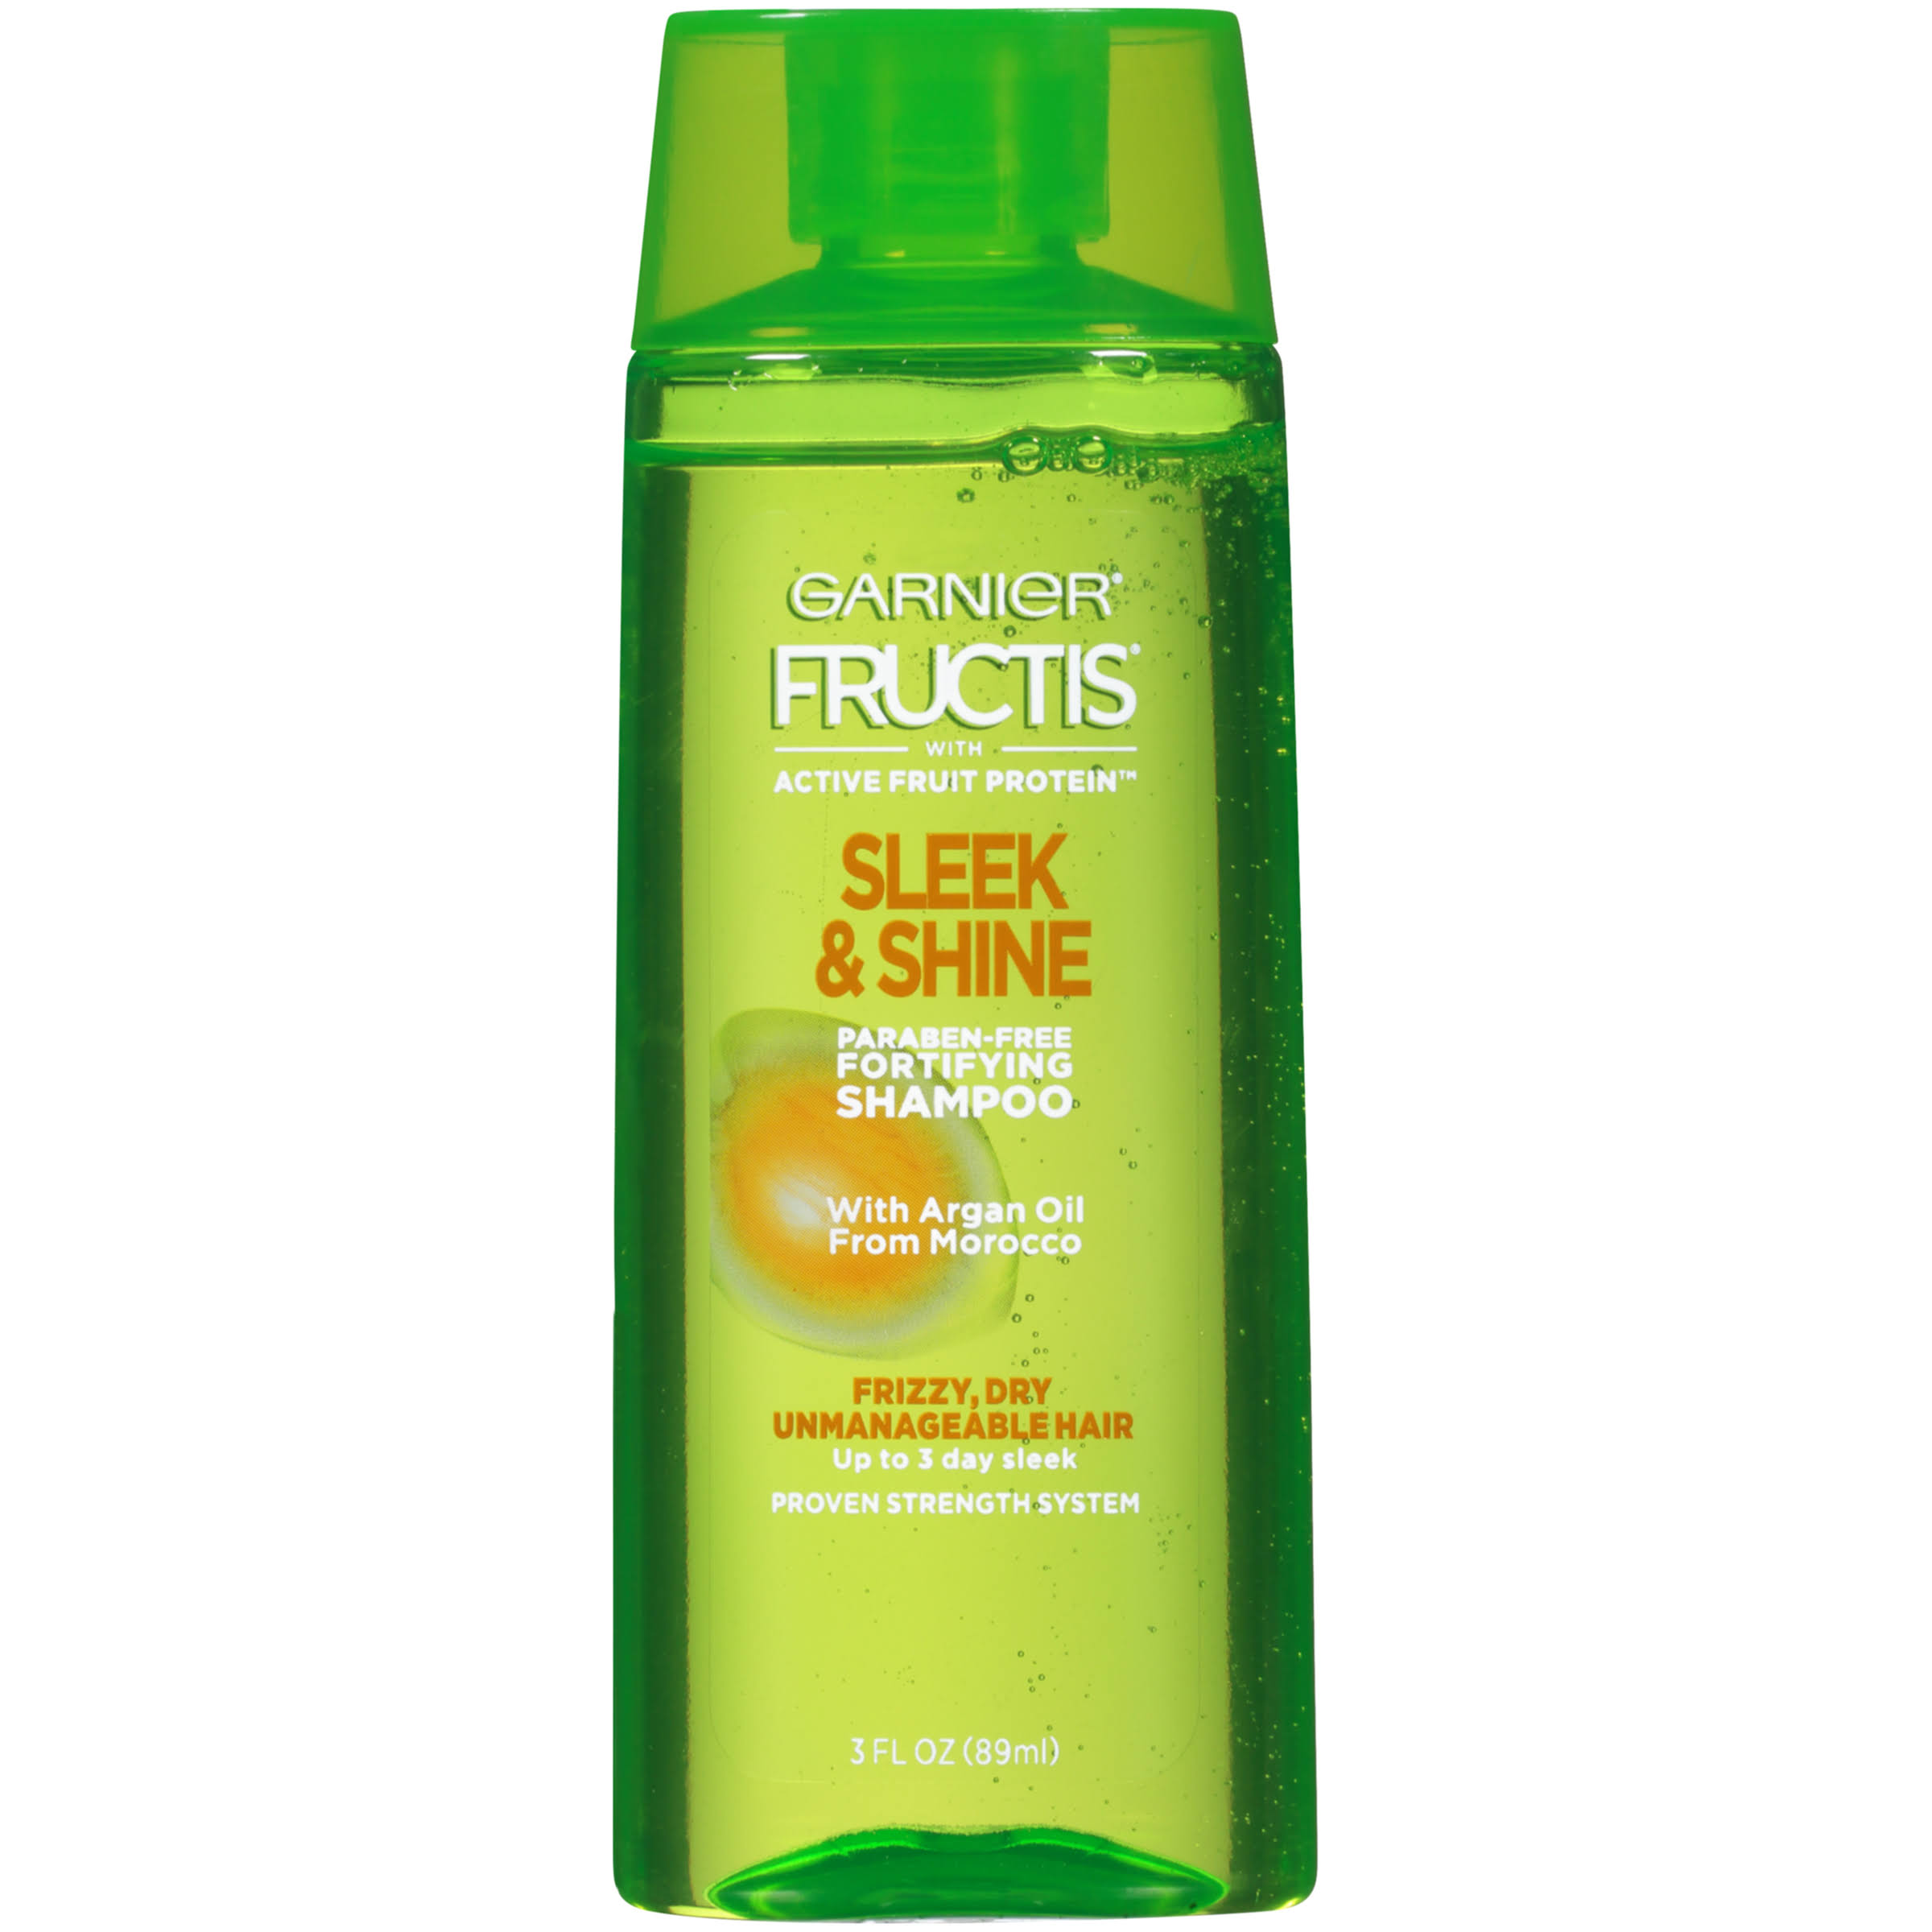 Garnier Fructis Sleek & Shine Fortifying Shampoo - 89ml